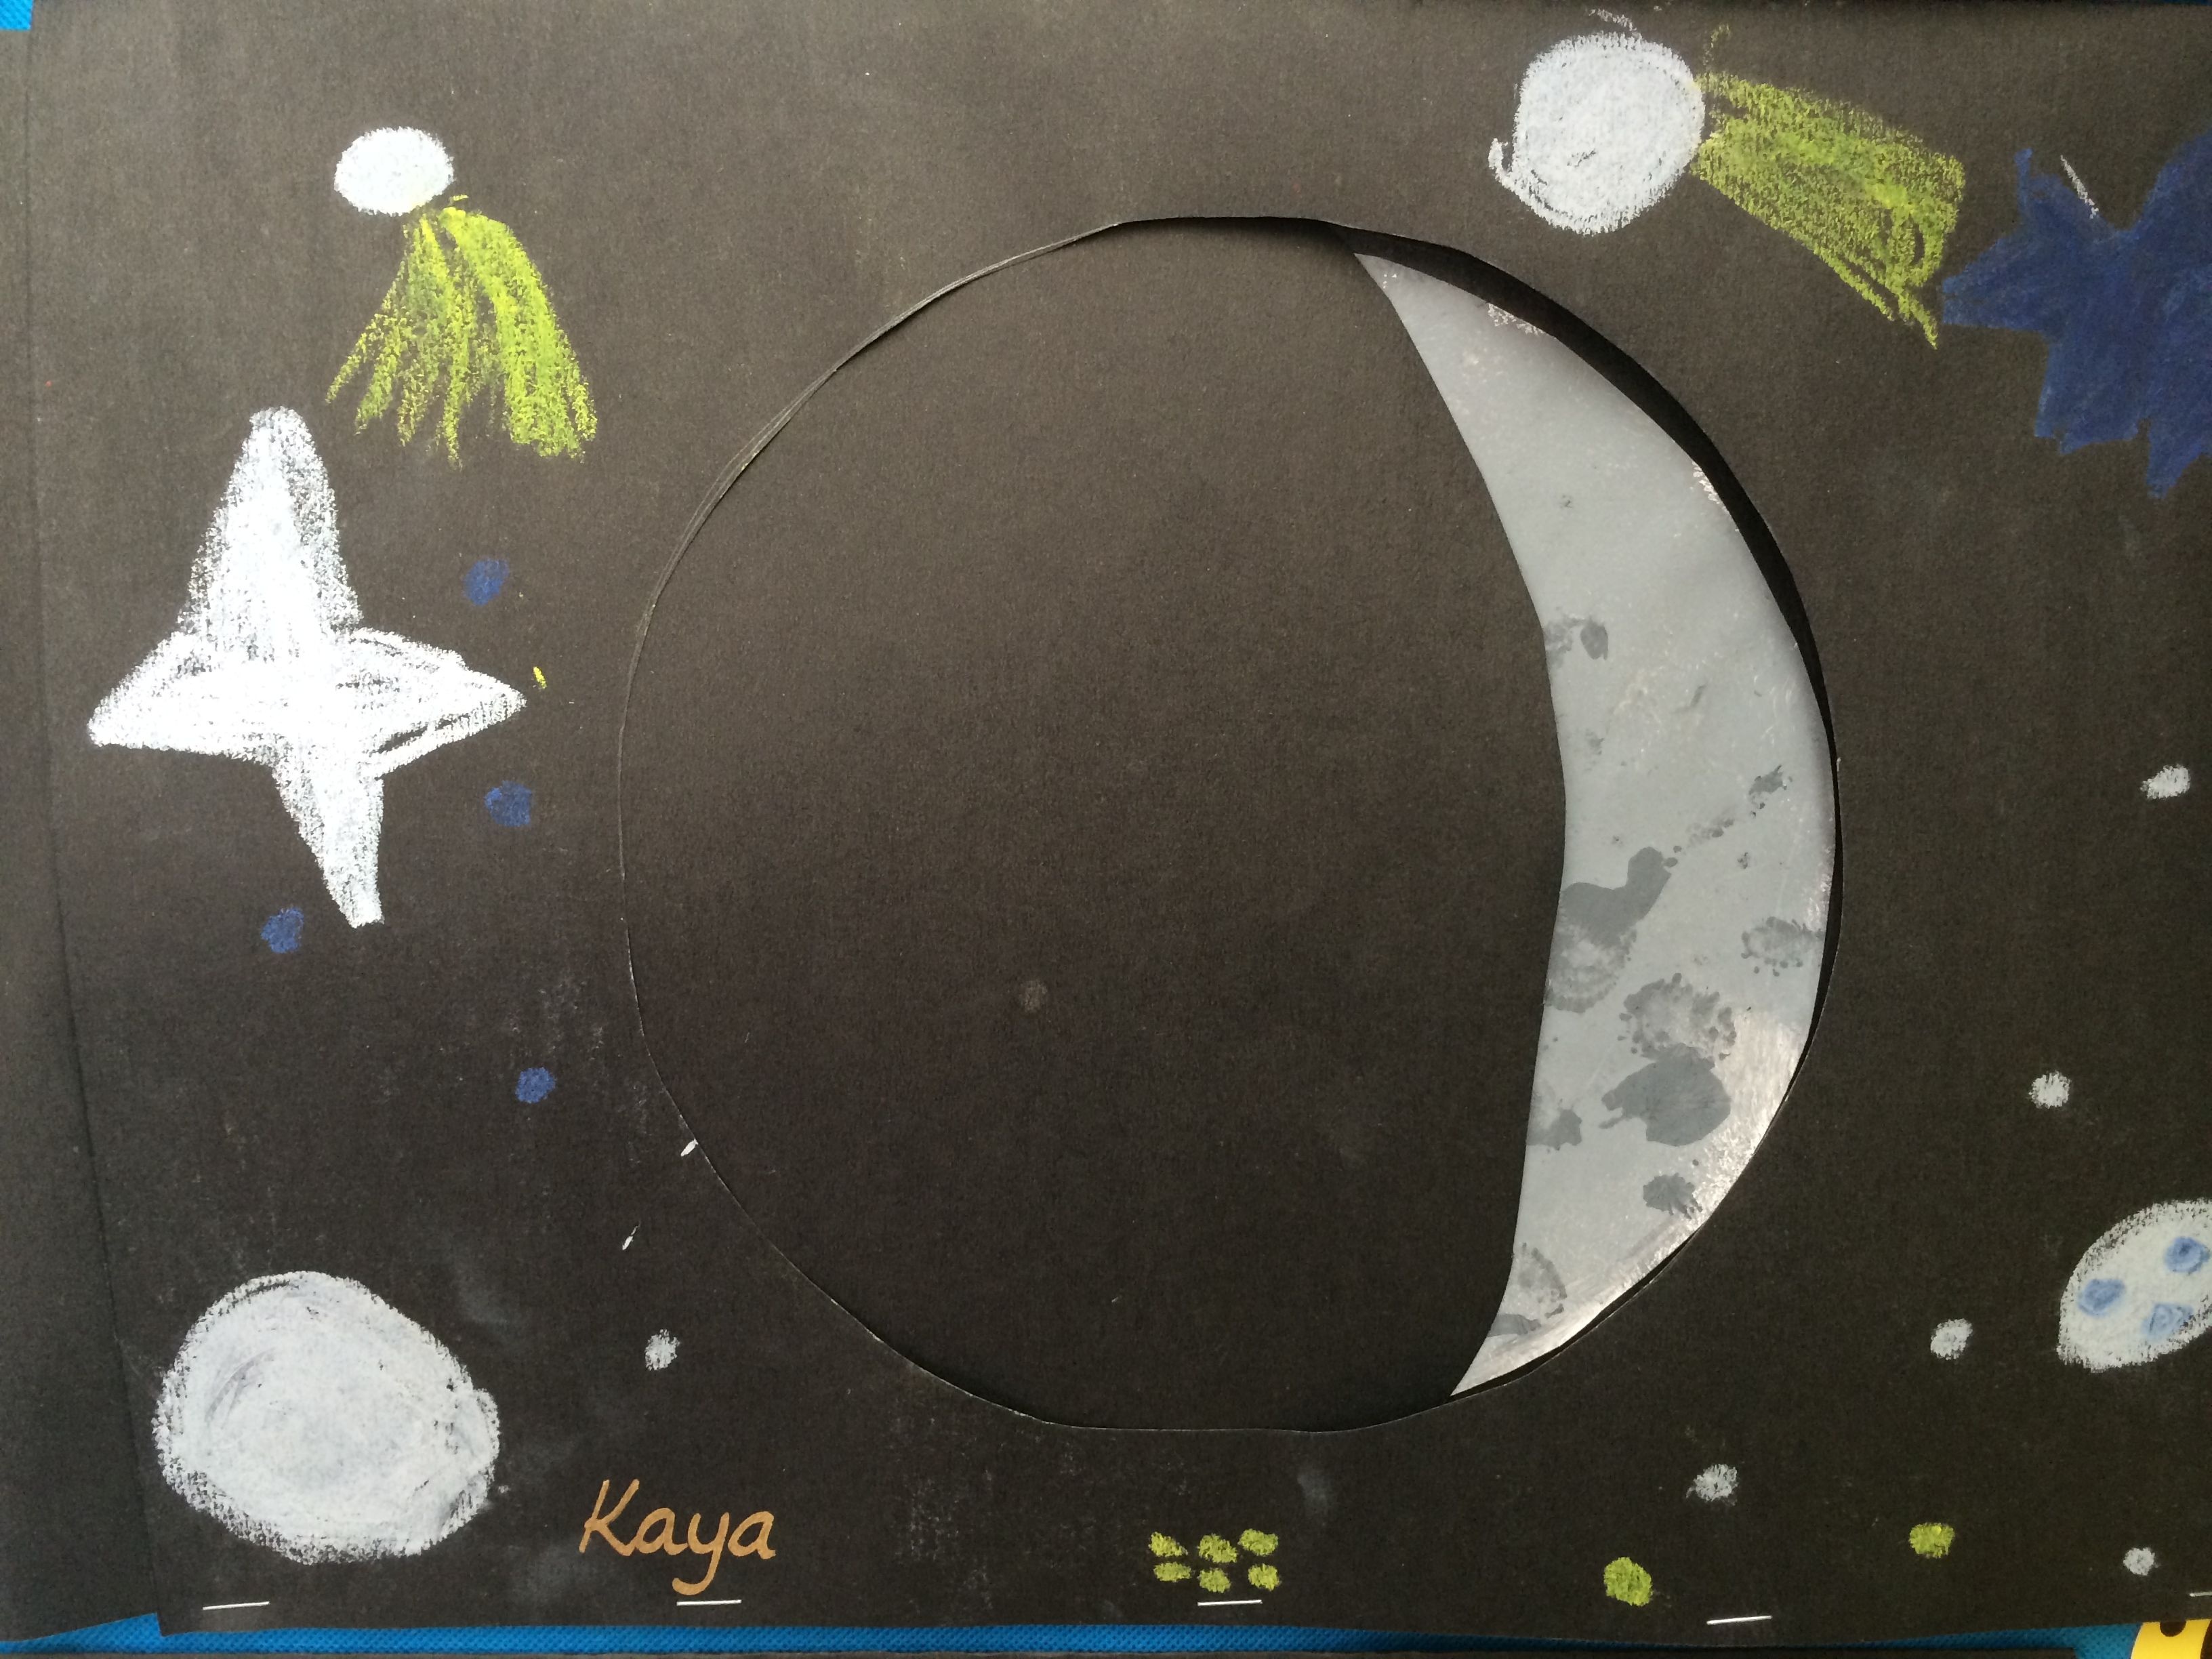 Another Phases Of The Moon Picture The Project Has A